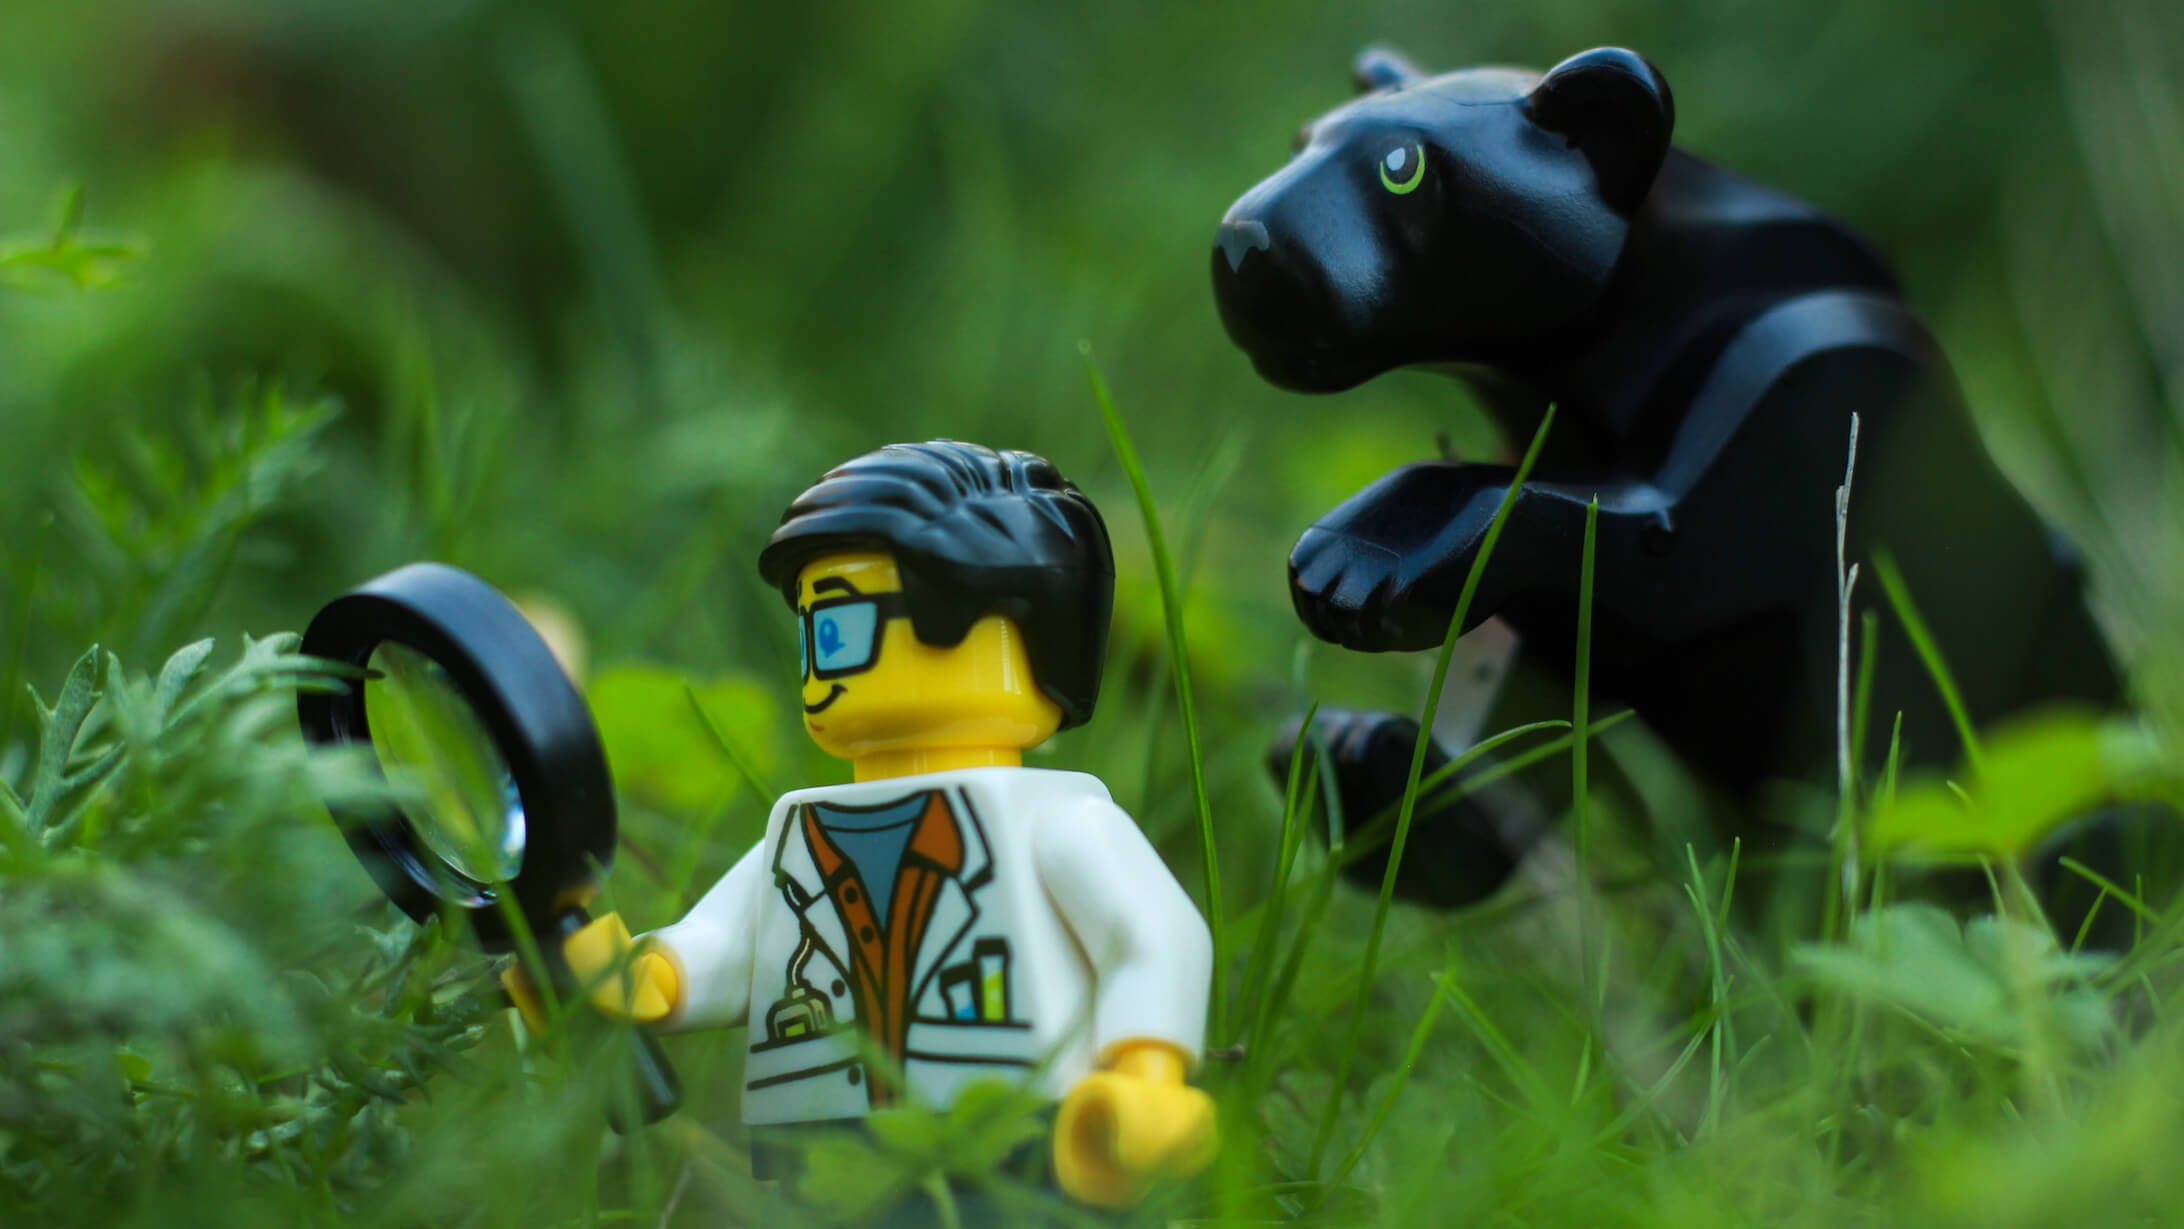 lego city jungle scientist panther